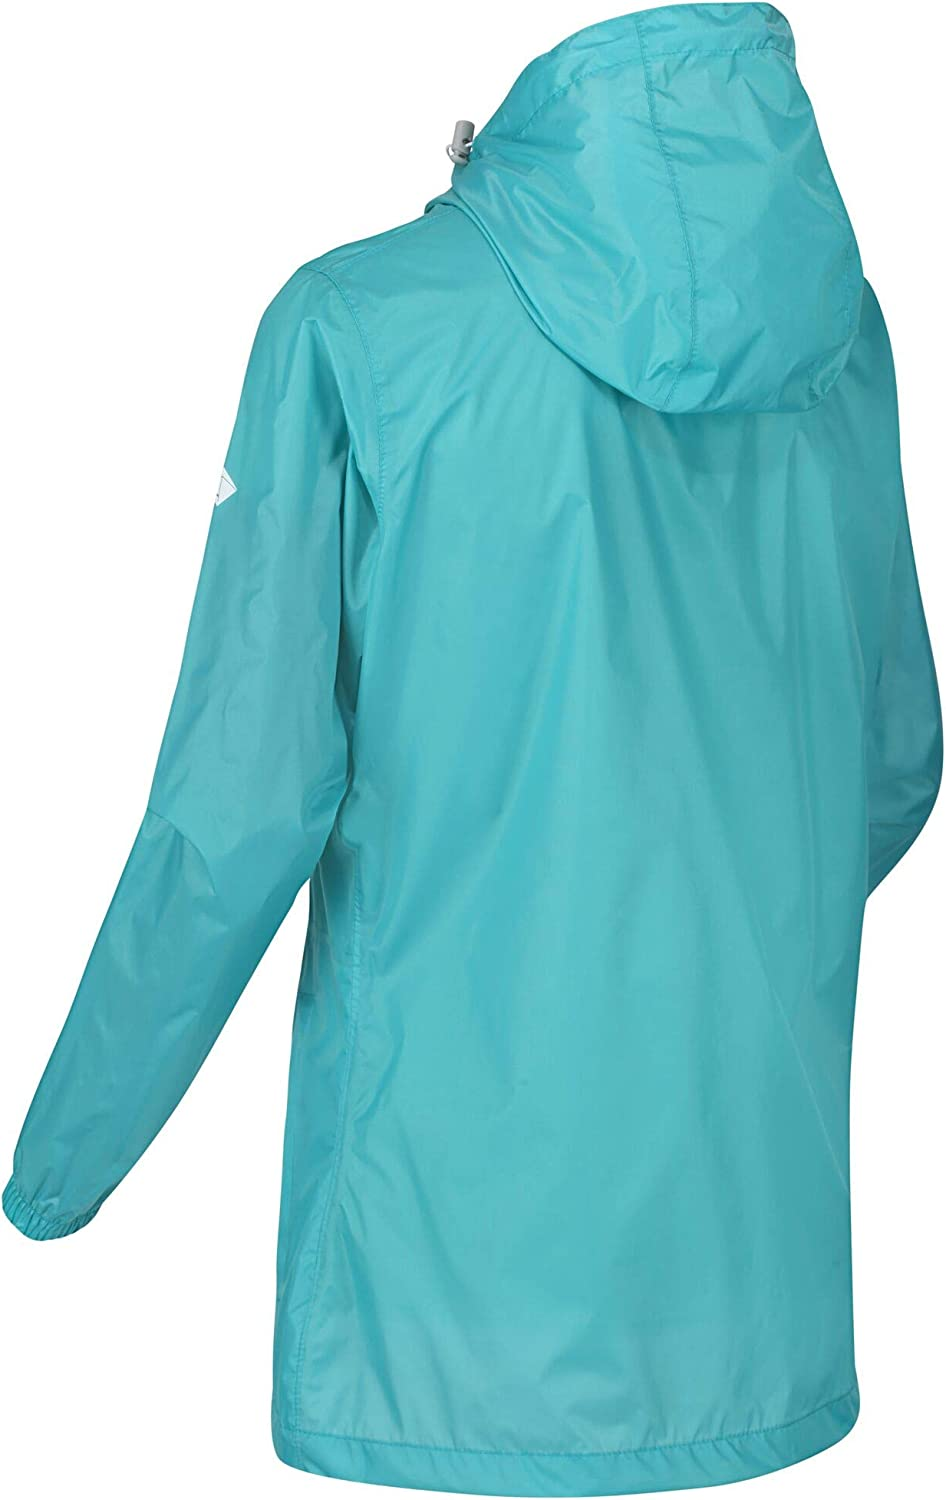 Regatta Women's Pack-it Iii' Breathable Taped Seams Packable Hooded Jackets Waterproof Shell Turquoise